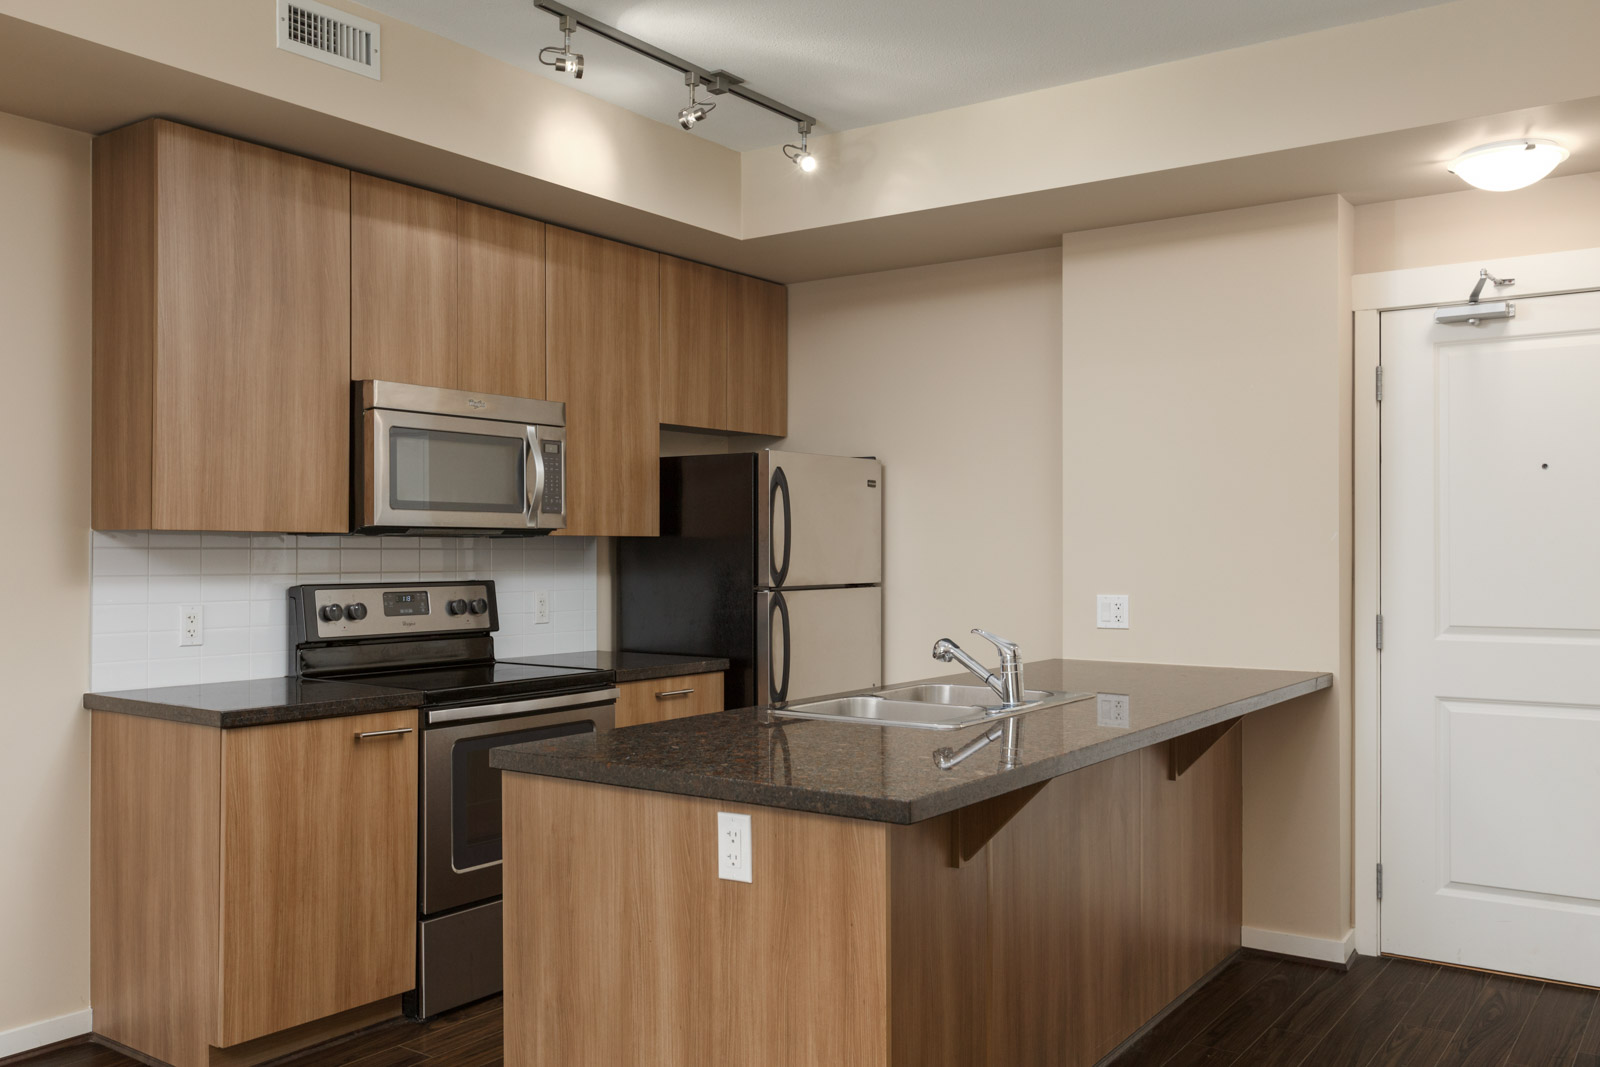 kitchen with island microwave and stainless steel refridgerator and stove and oven in a rental condo in richmond at remy on stolberg managed by birds nest properties